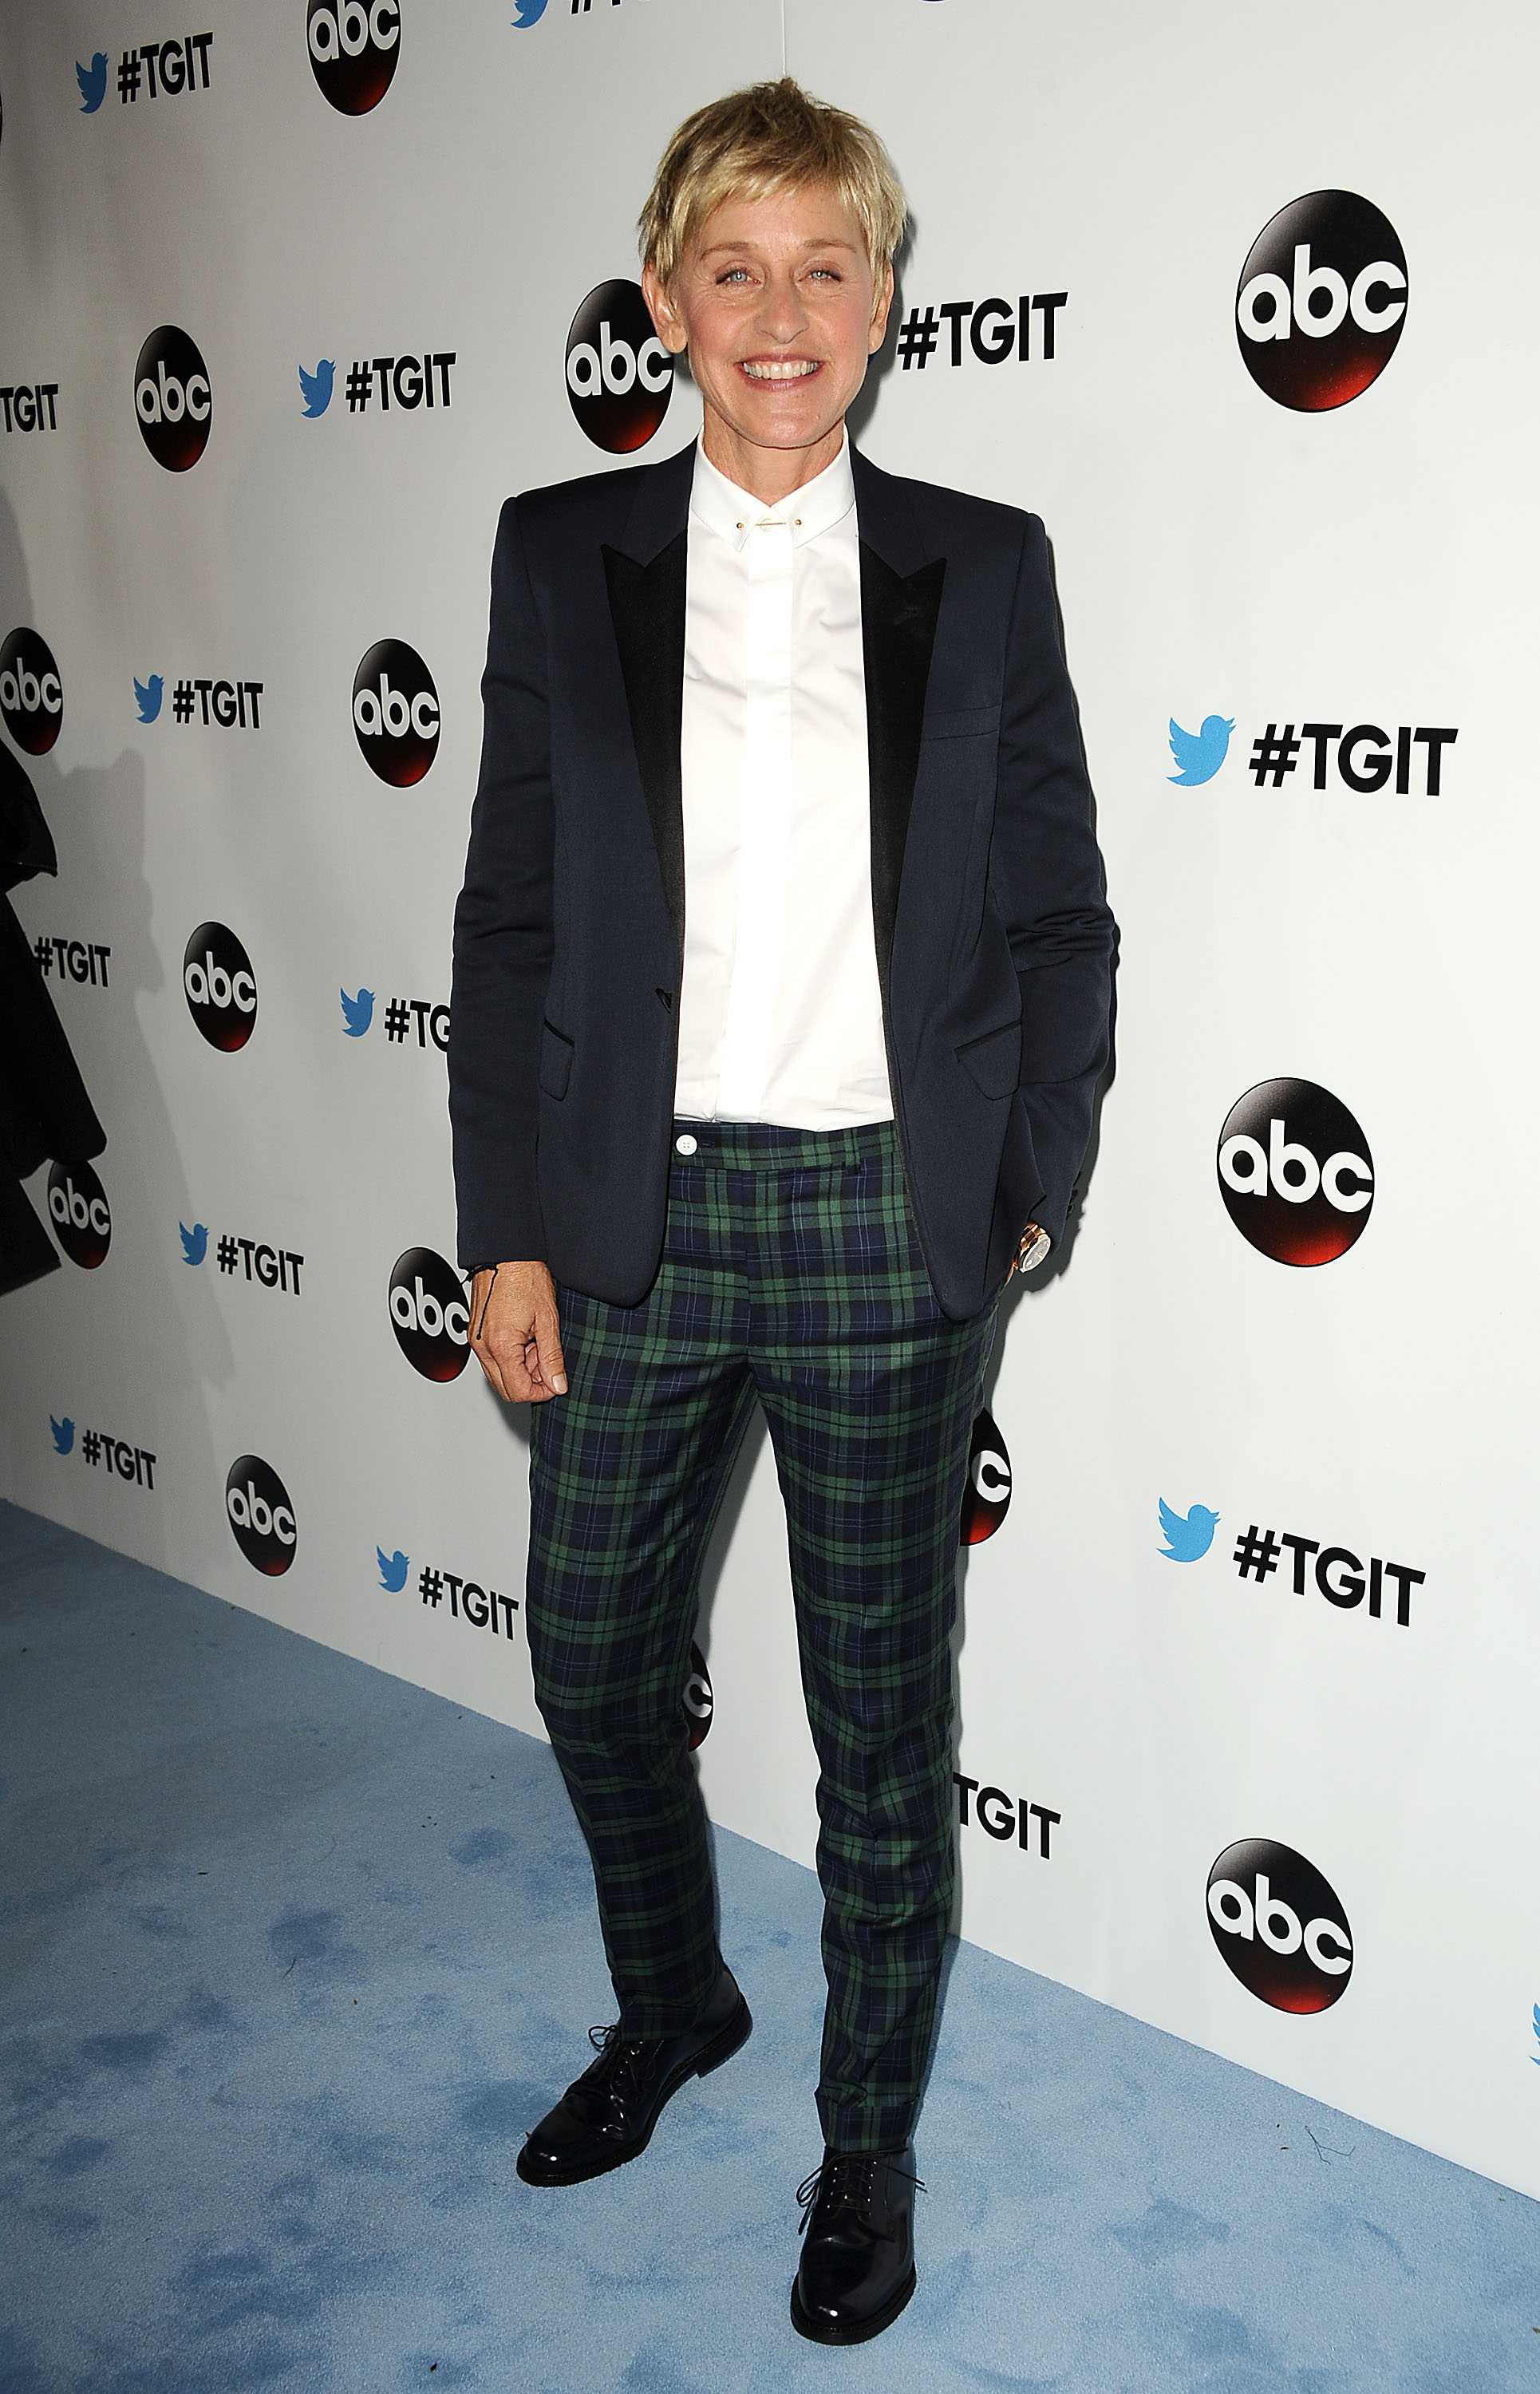 Ellen DeGeneres attends the #TGIT premiere event hosted by Twitter at Palihouse Holloway on September 20, 2014 in West Hollywood, California.